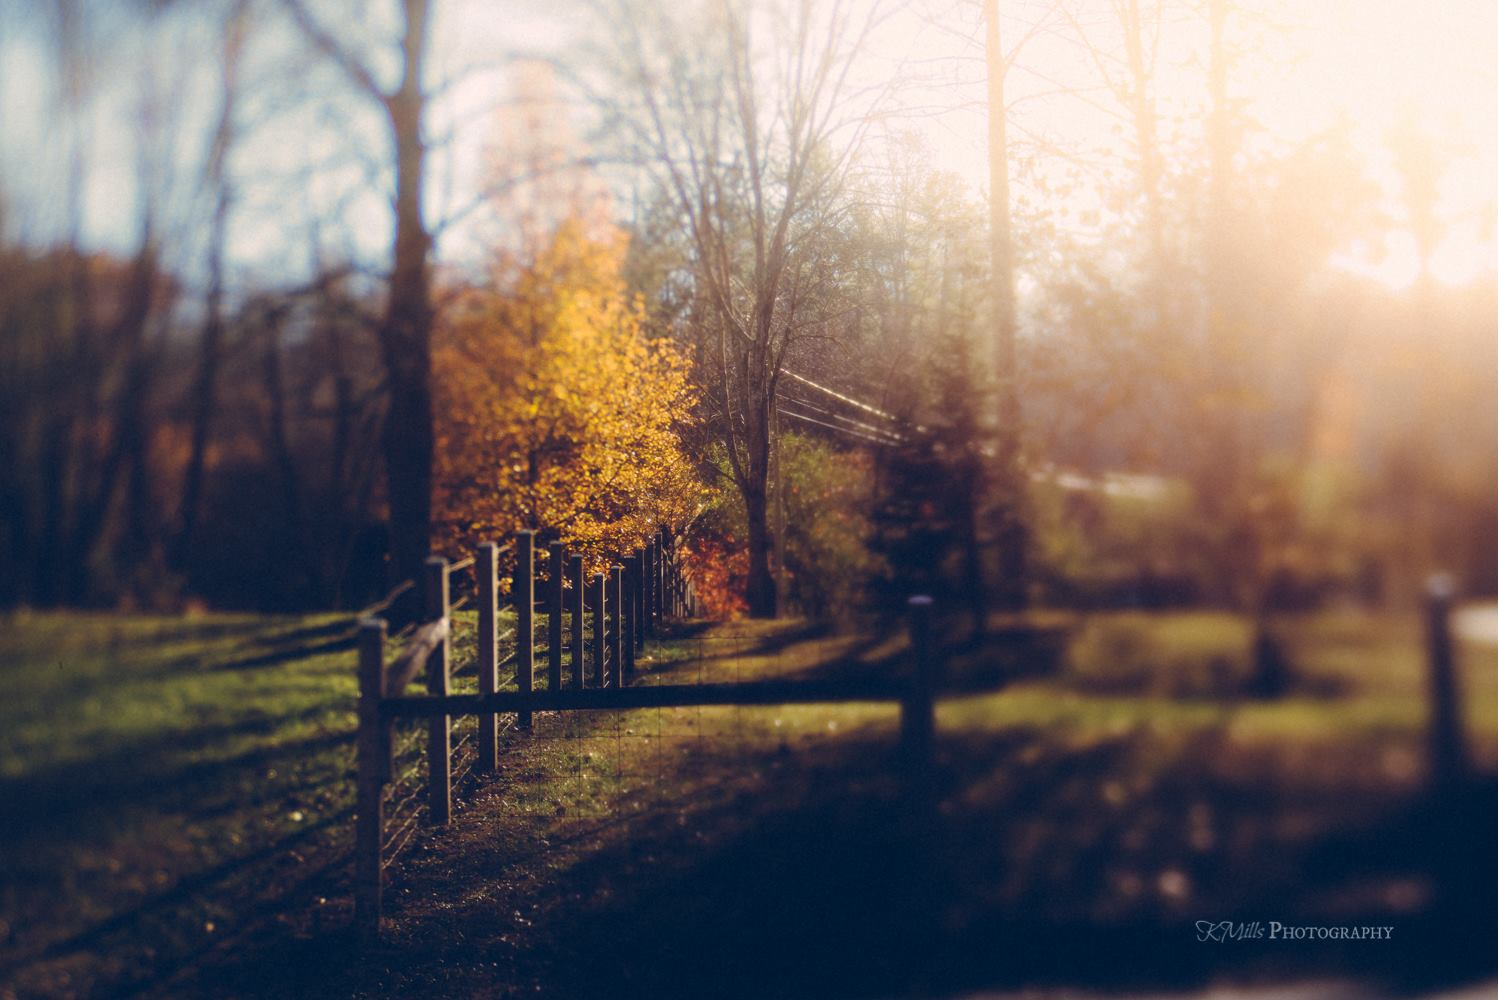 fall foliage autumn leaves selective focus yellow tree featured photos of the week